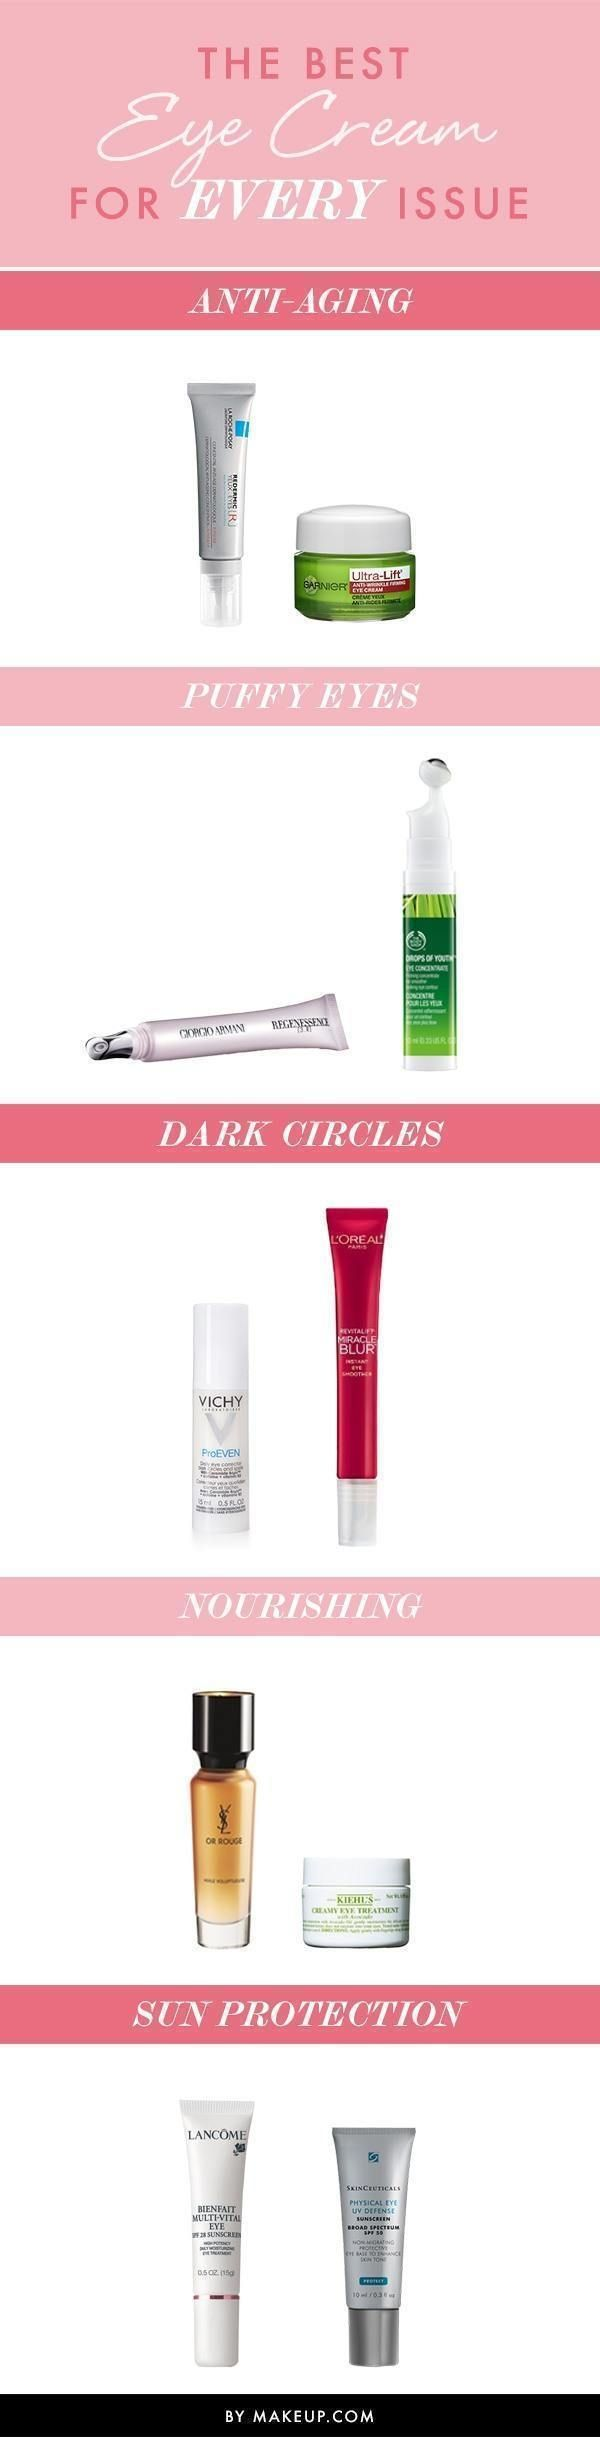 Eyes can give us some problems, but we found the best eye creams for every eye issue.